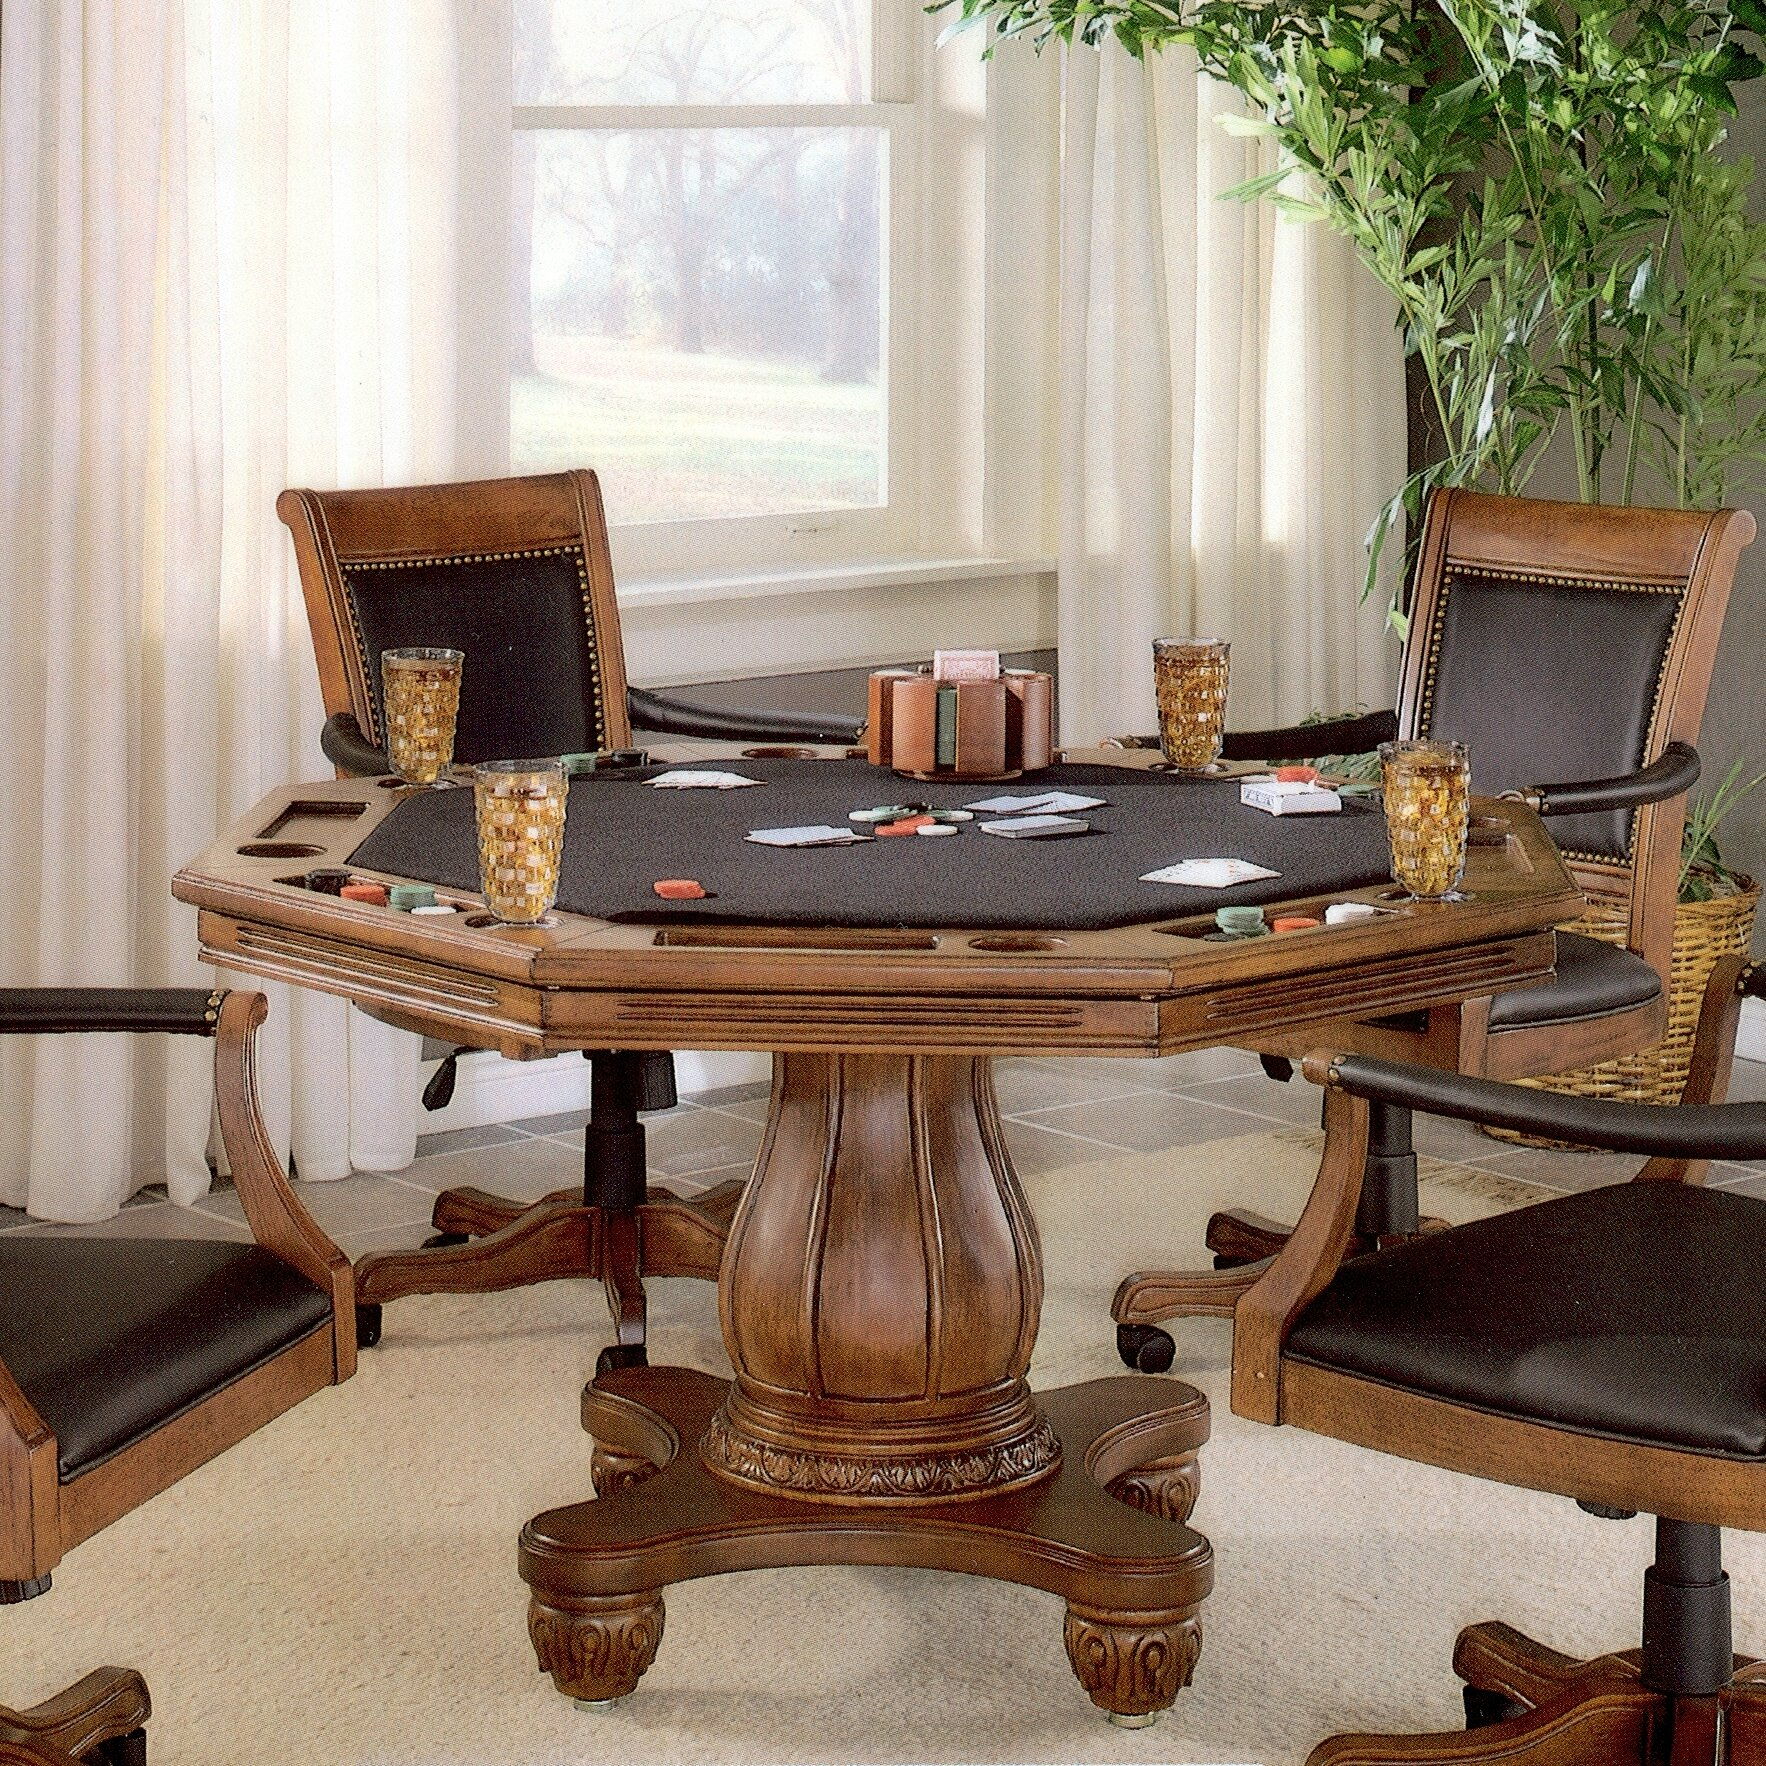 Poker Dining Room Table: Strawn Poker Table